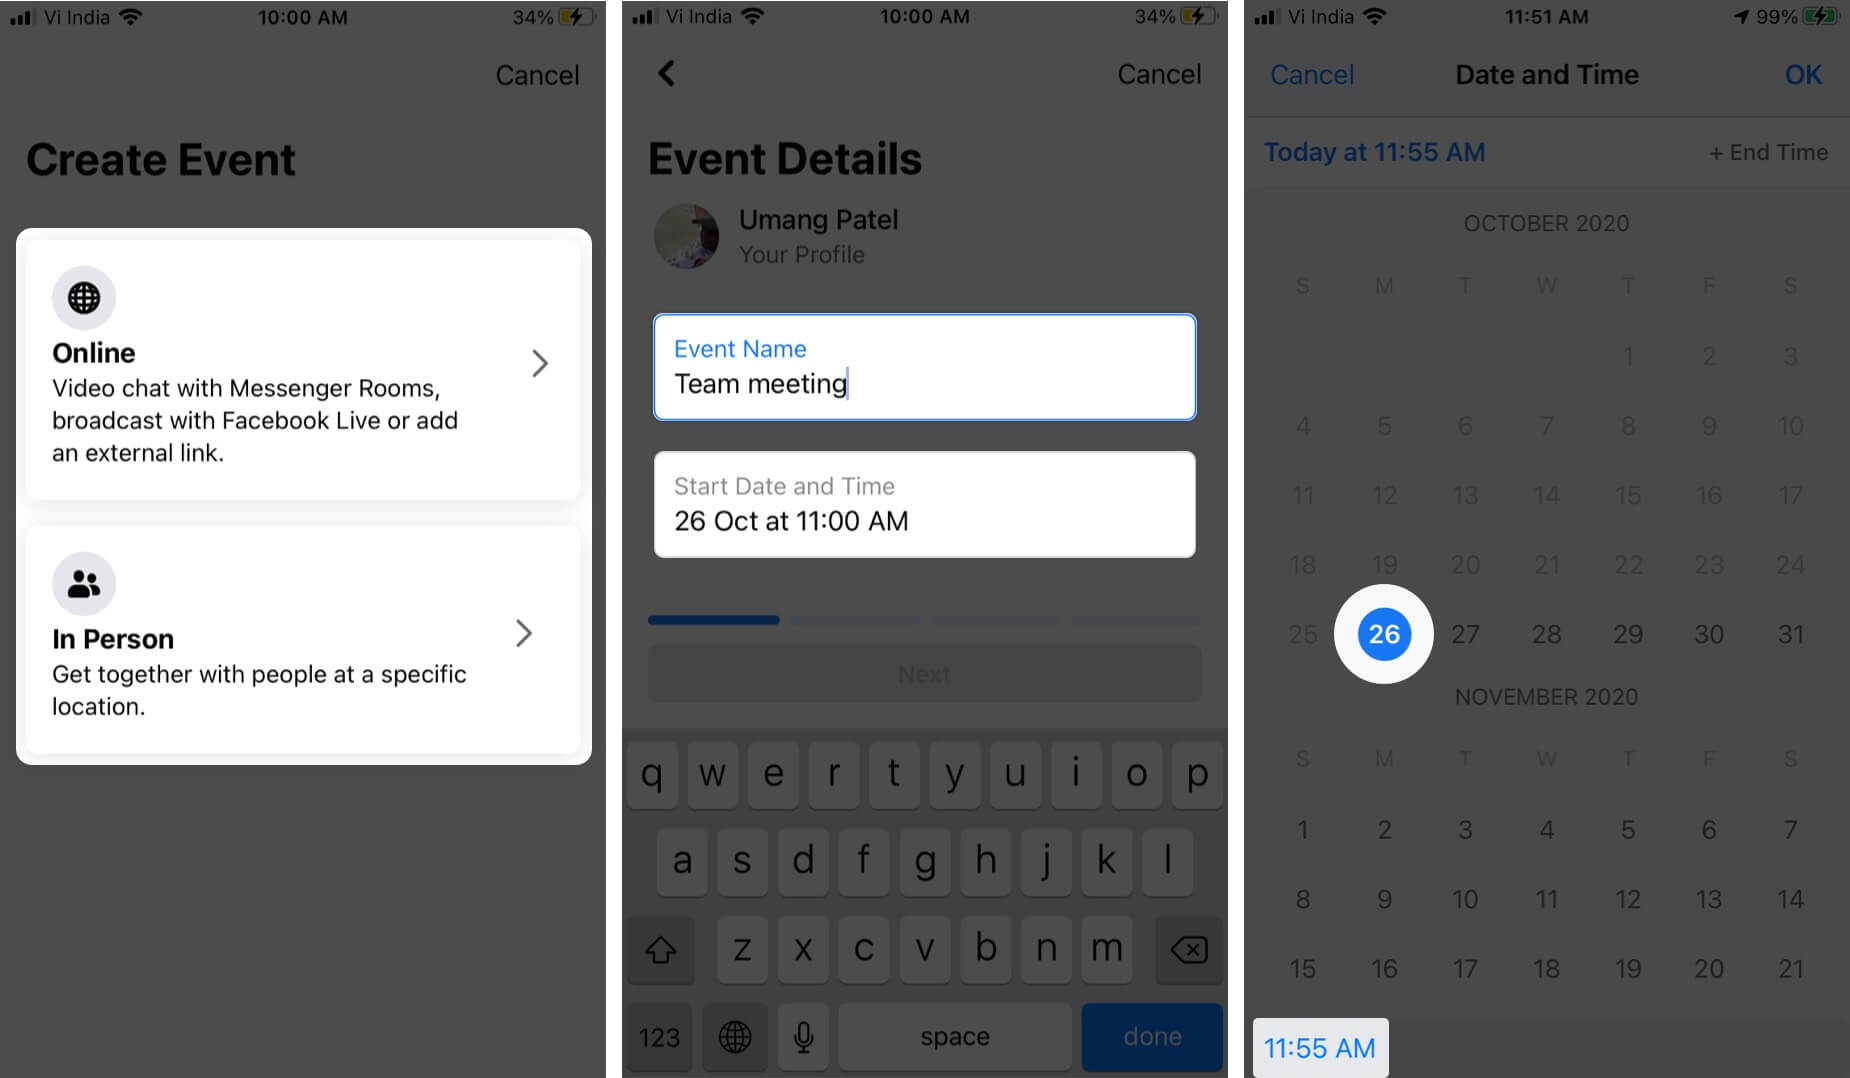 Select Option Type Event Name and Tap on Date to Select Date and Then Tap on Time